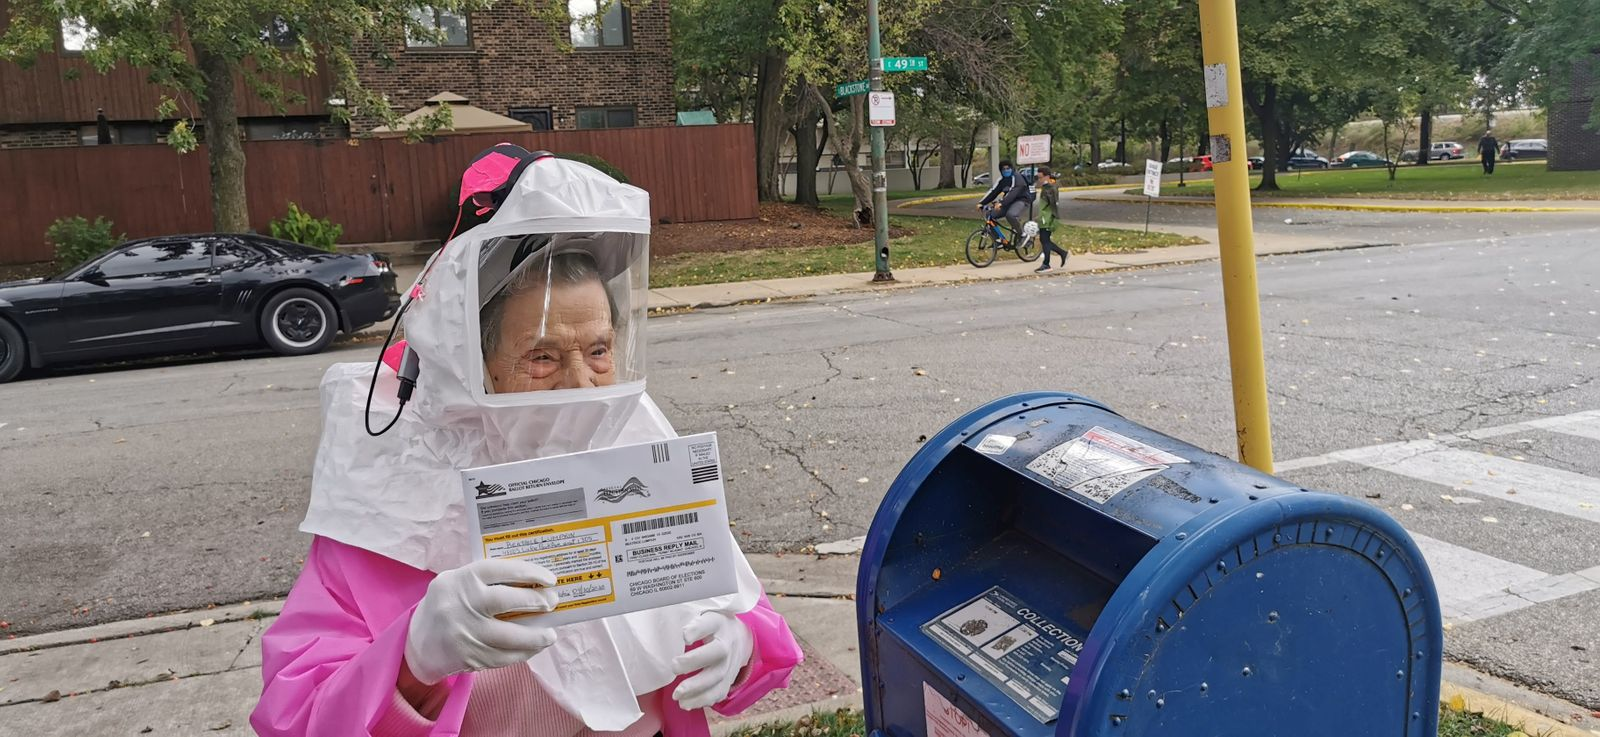 Beatrice Lumpkin, 102-year-old former teacher, casts her vote-by-mail ballot in Chicago